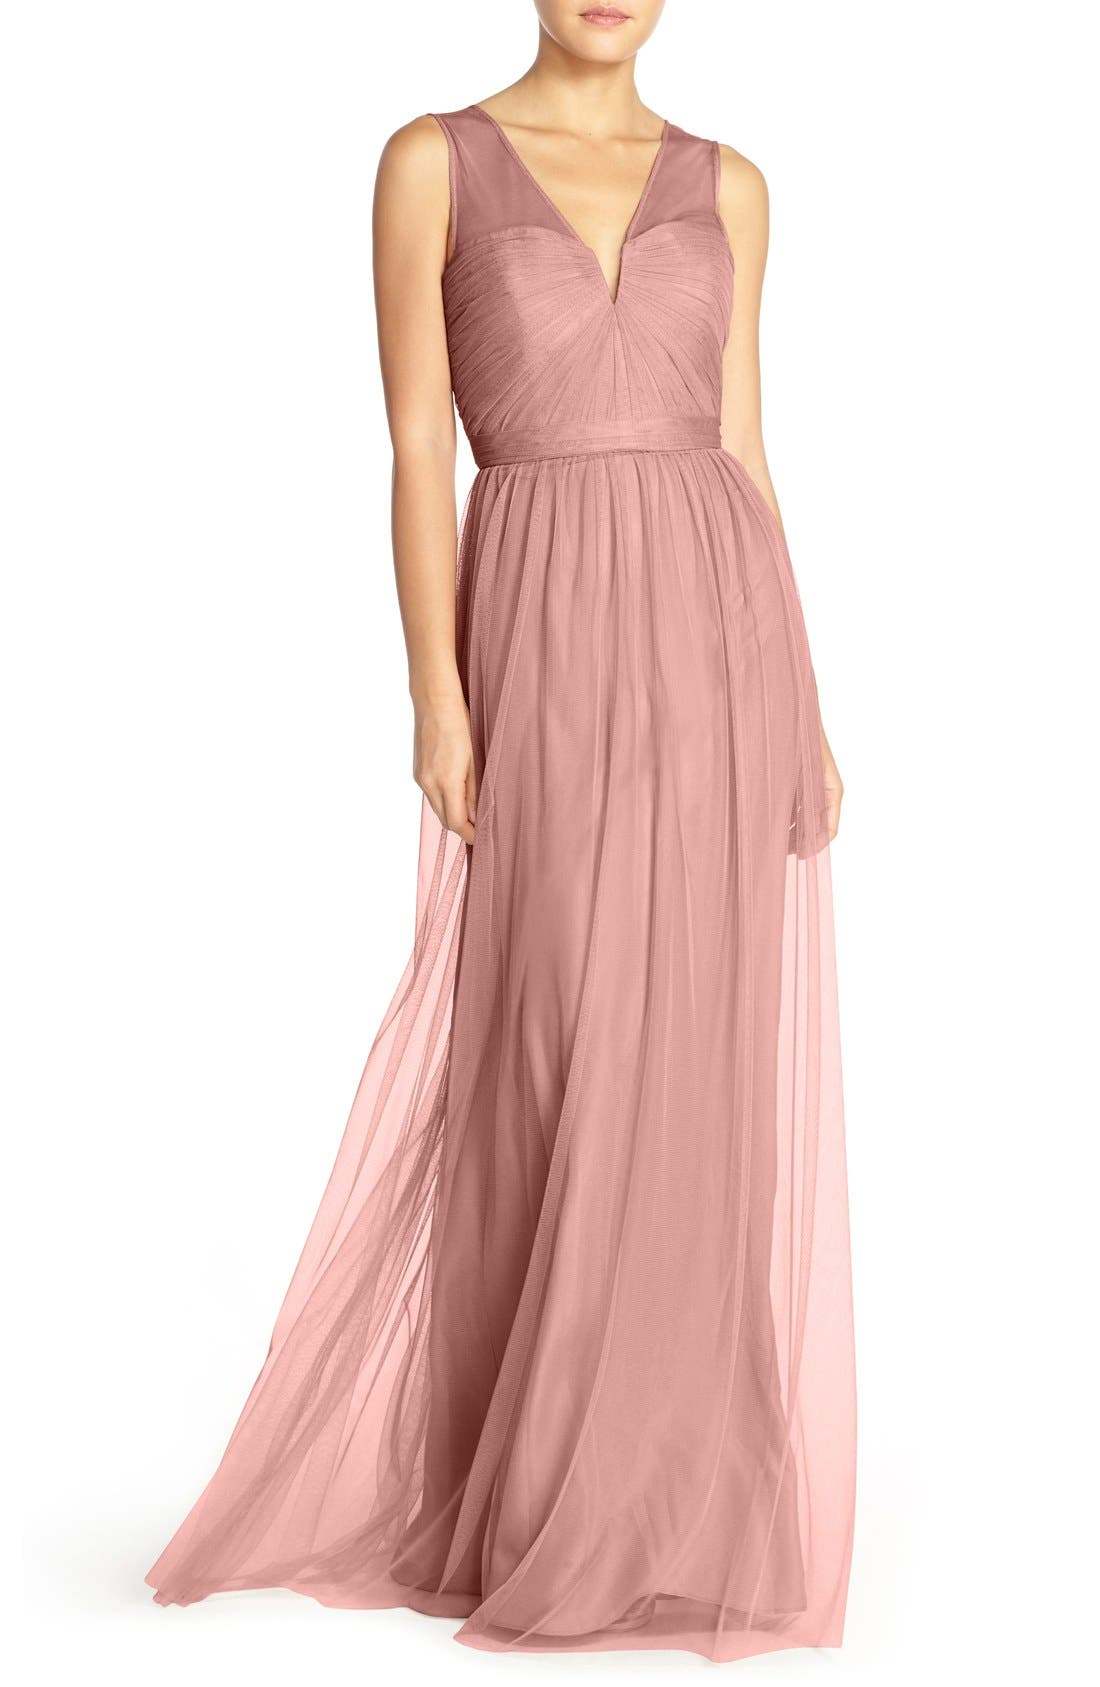 'Alyce' Illusion V-Neck Pleat Tulle Gown,                             Main thumbnail 3, color,